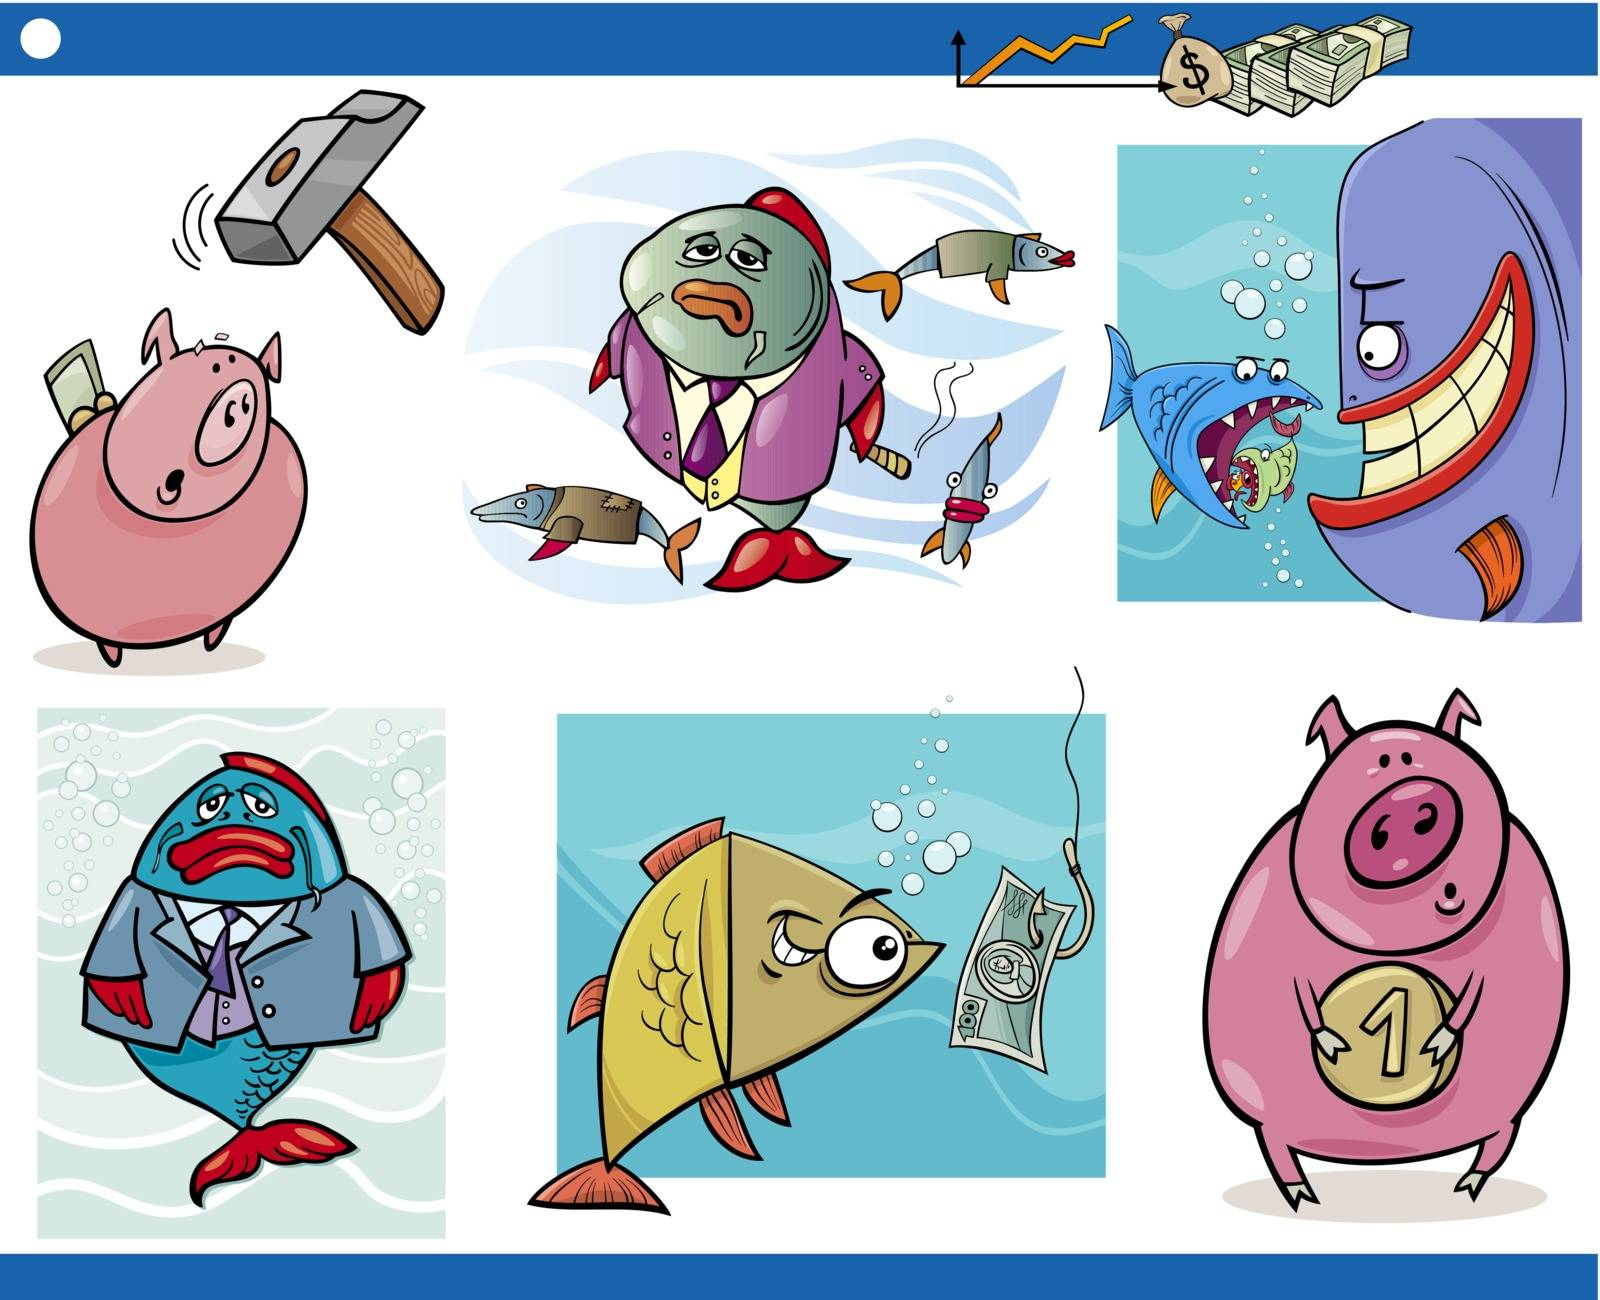 Cartoon Illustration Set of Business Concepts and Metaphors